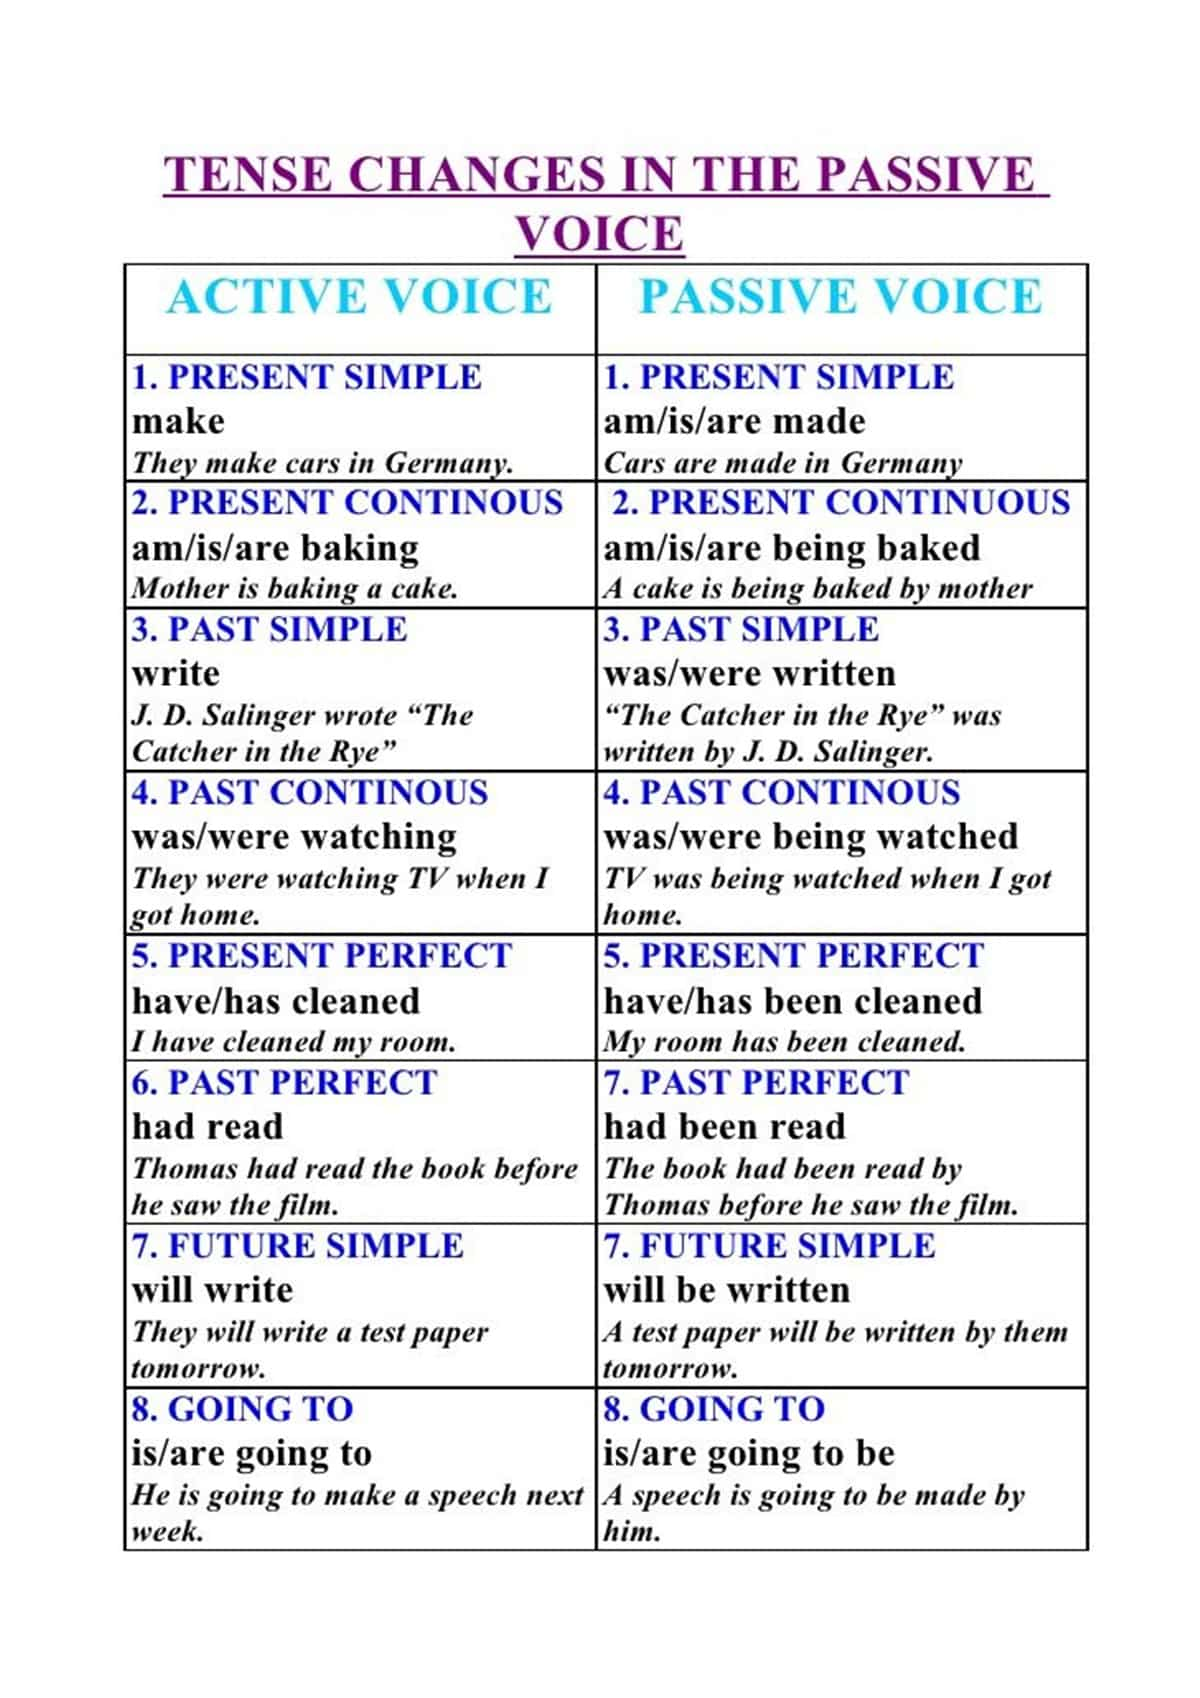 Passive Voice with Simple Future Tense (Be Going to)